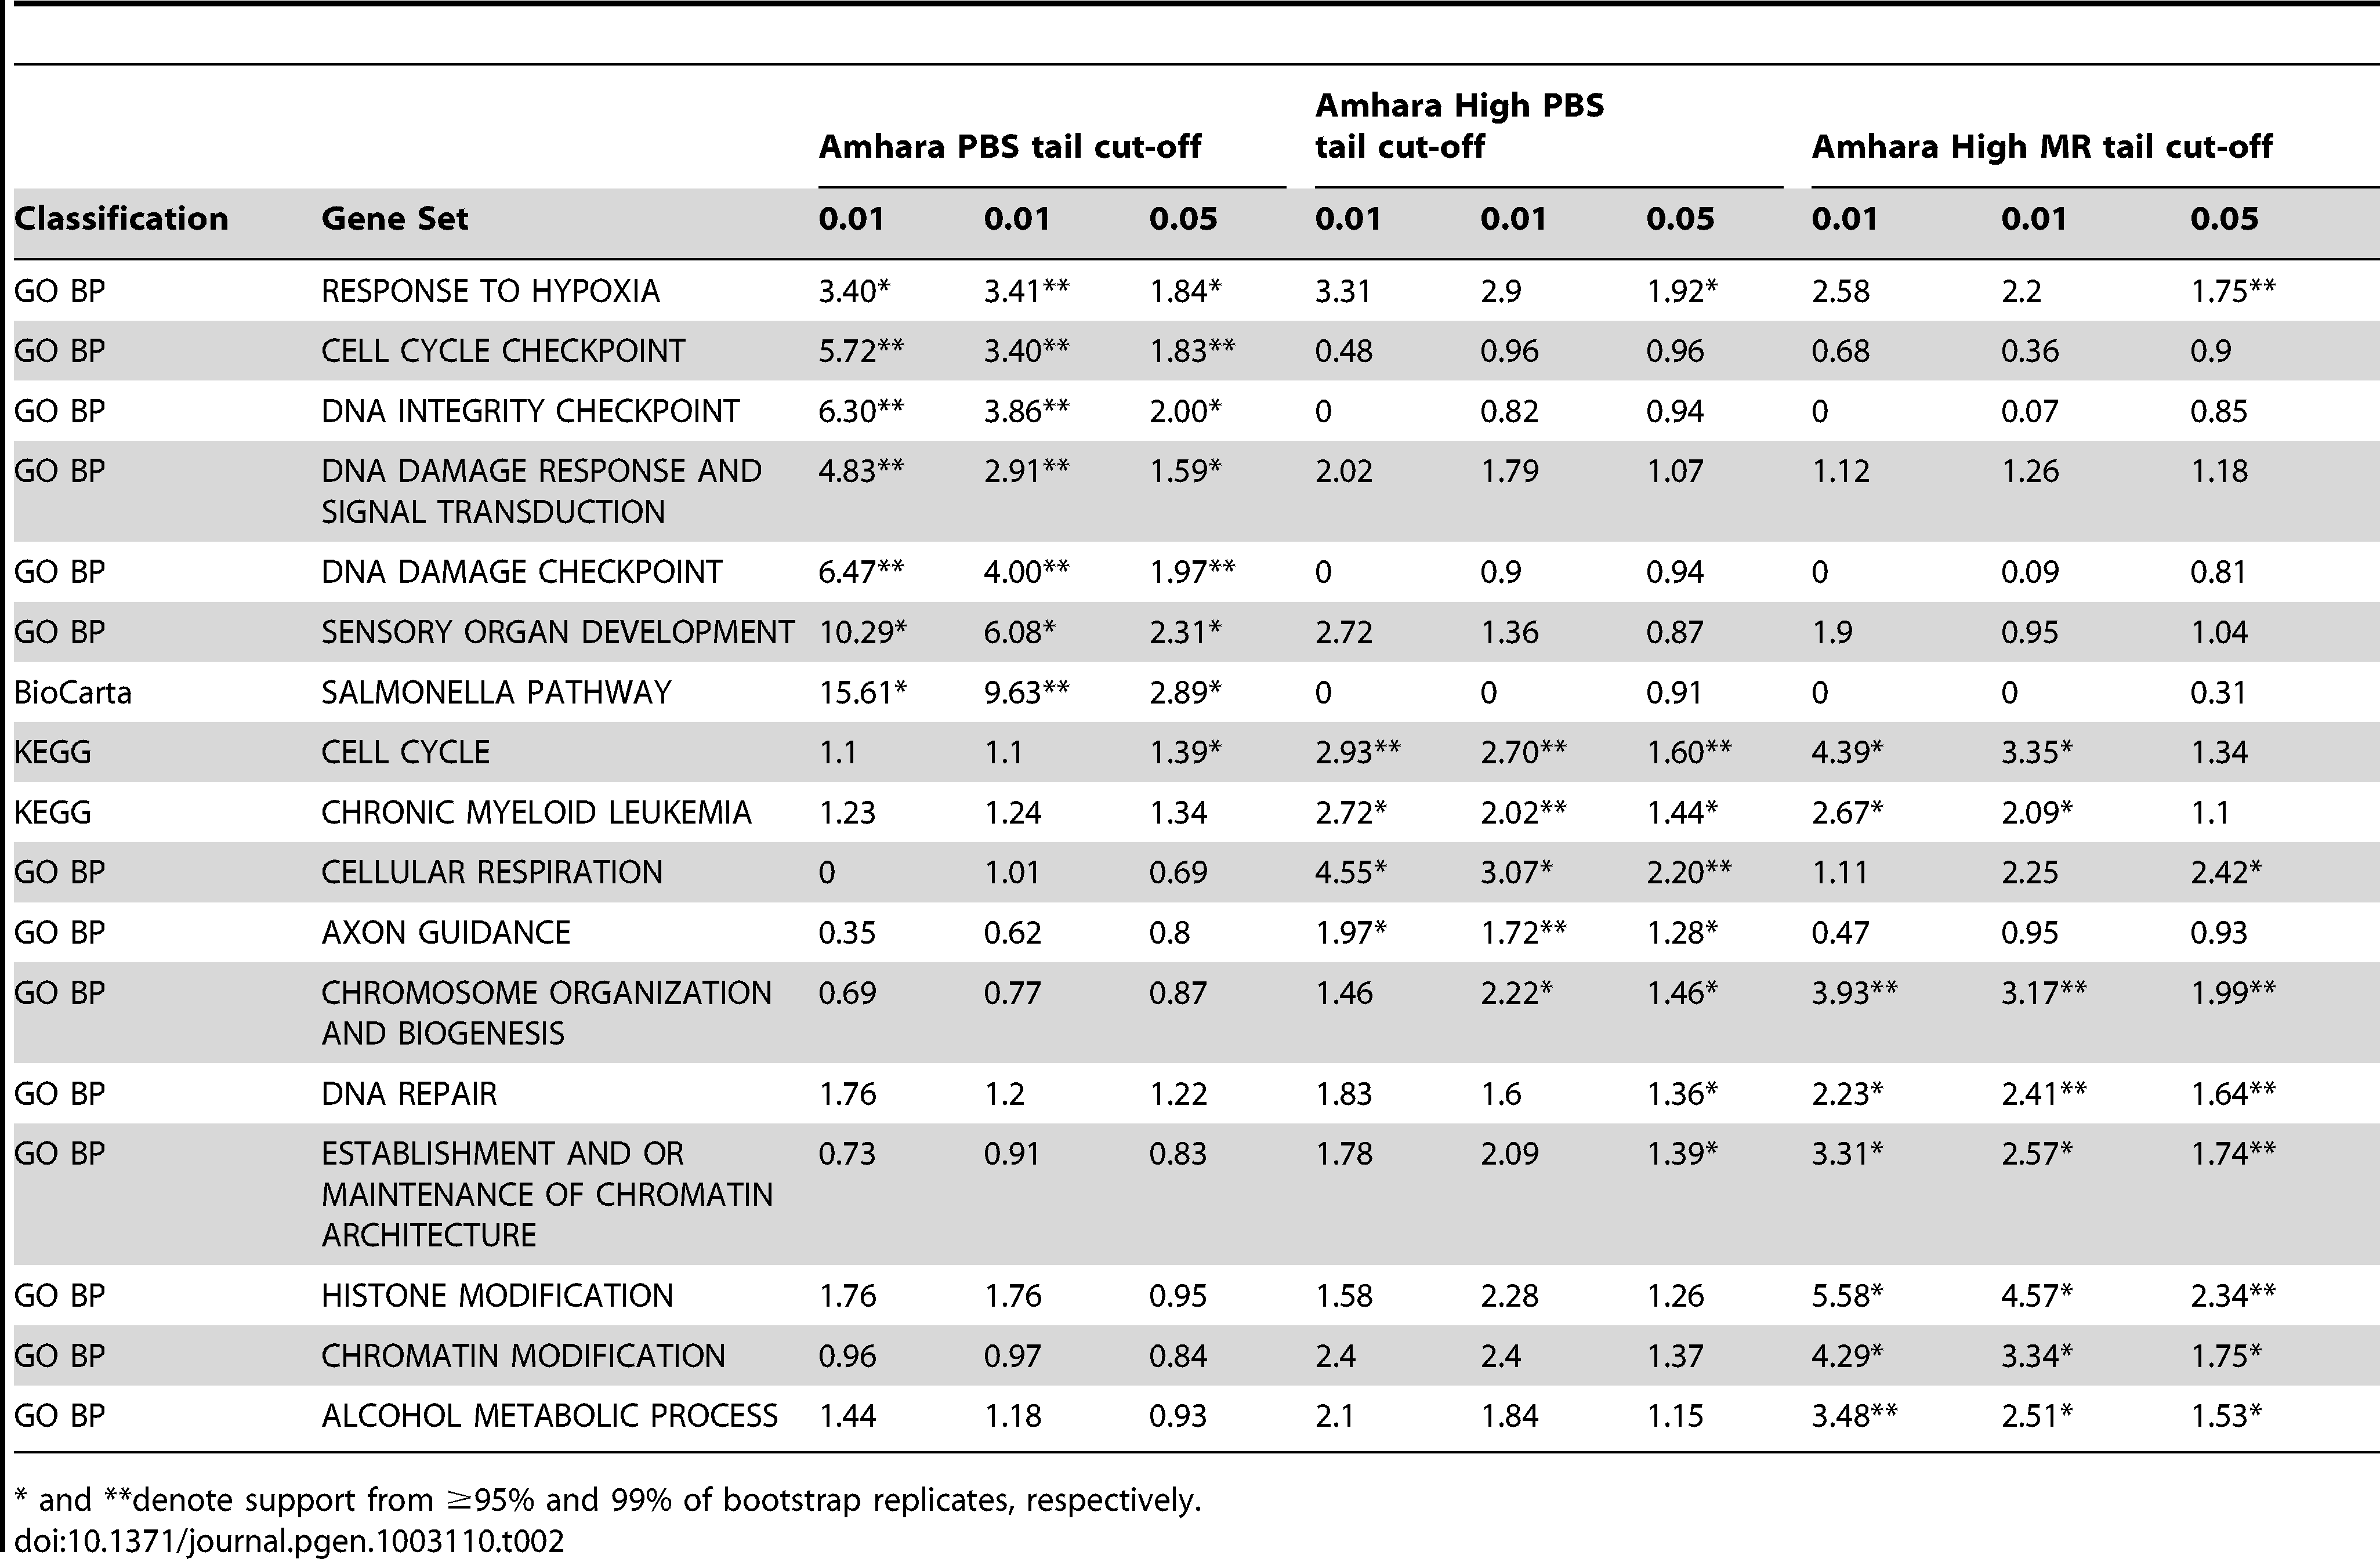 Biological pathways for which a significant excess of genic relative to all other genic SNPs are observed for all three tail cut-offs of the Amhara PBS, Amhara High PBS, or Amhara High MR distributions, respectively.